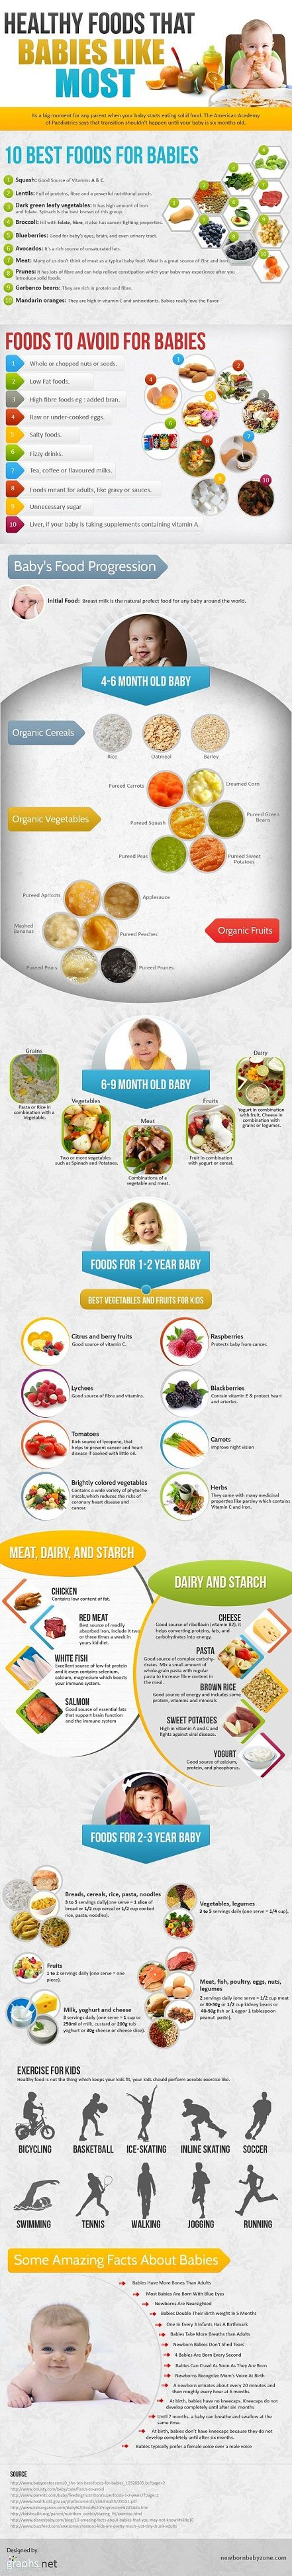 Healthy Foods That Babies Like Most (Infographic)